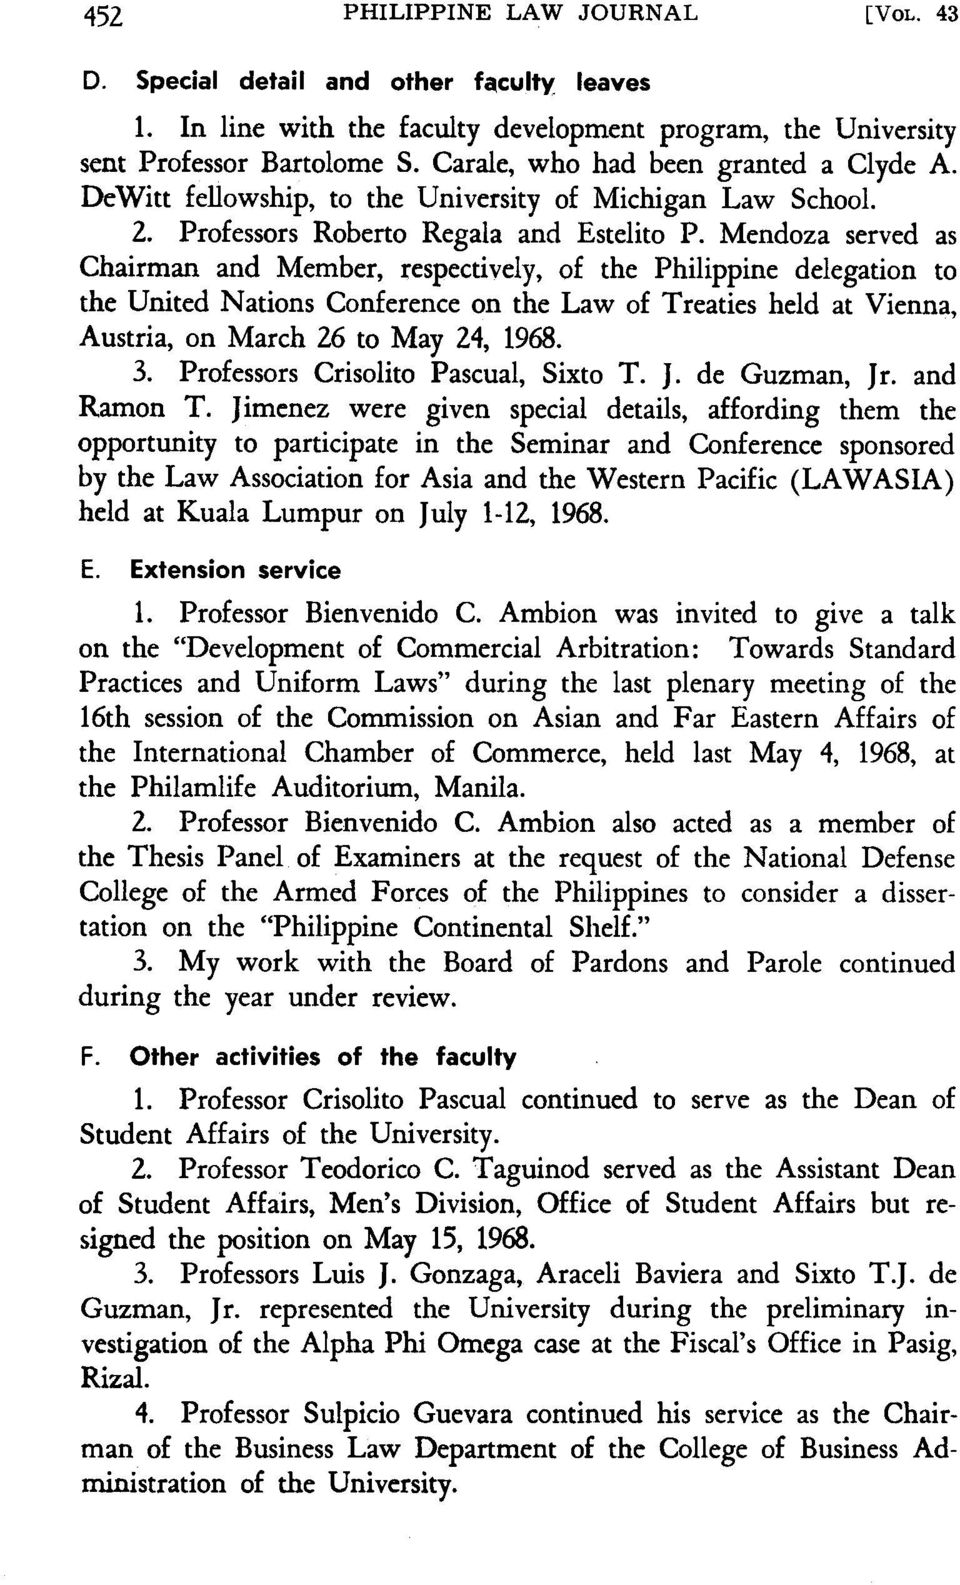 Mendoza served as Chairman and Member, respectively, of the Philippine delegation to the United Nations Conference on the Law of Treaties held at Vienna, Austria, on March 26 to May 24, 1968. 3.